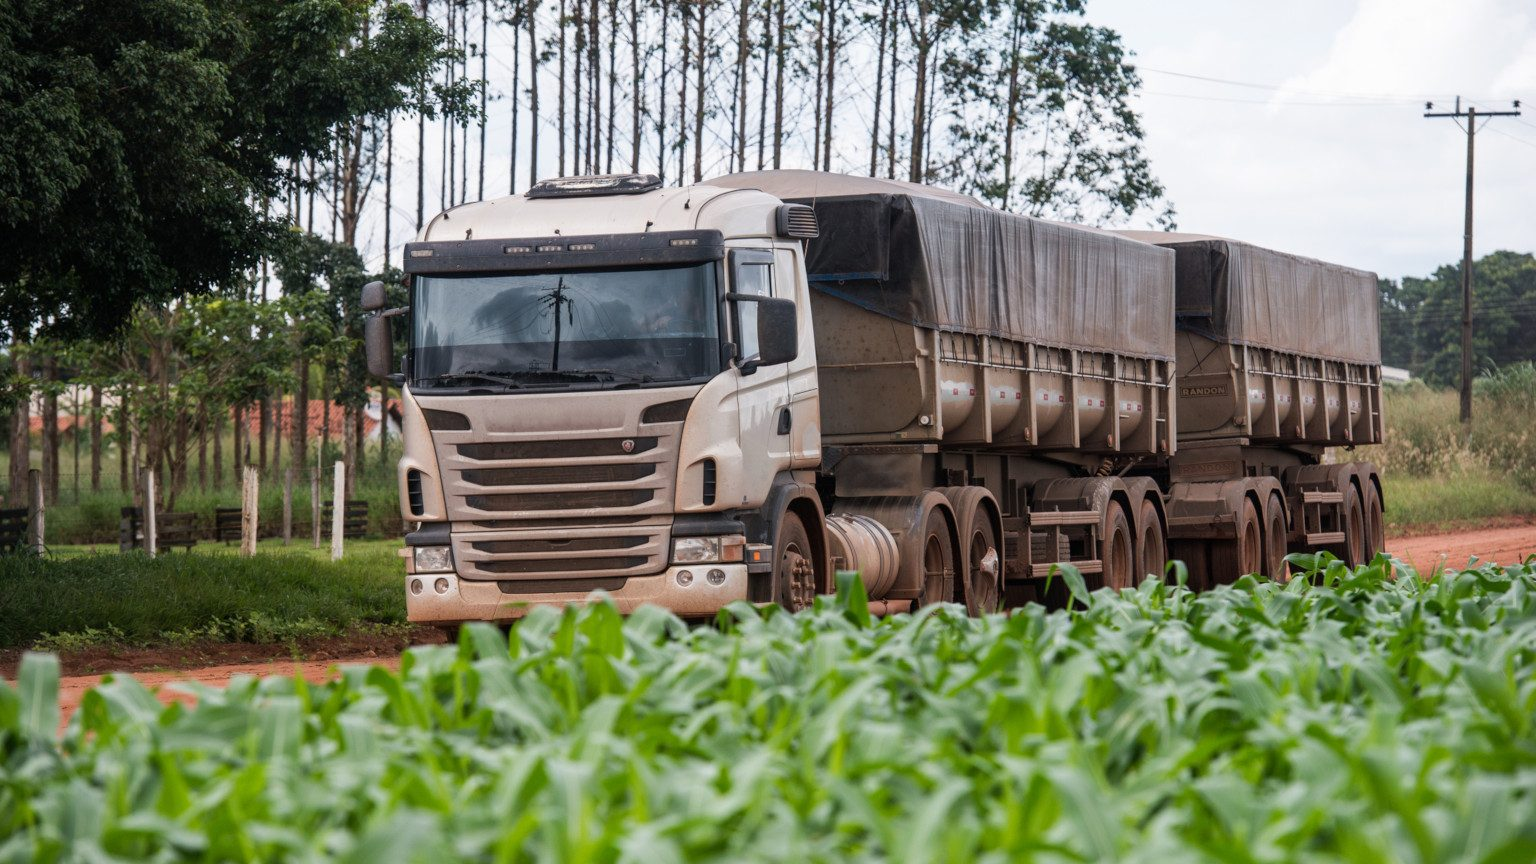 A transport truck carrying commodities driving past a field